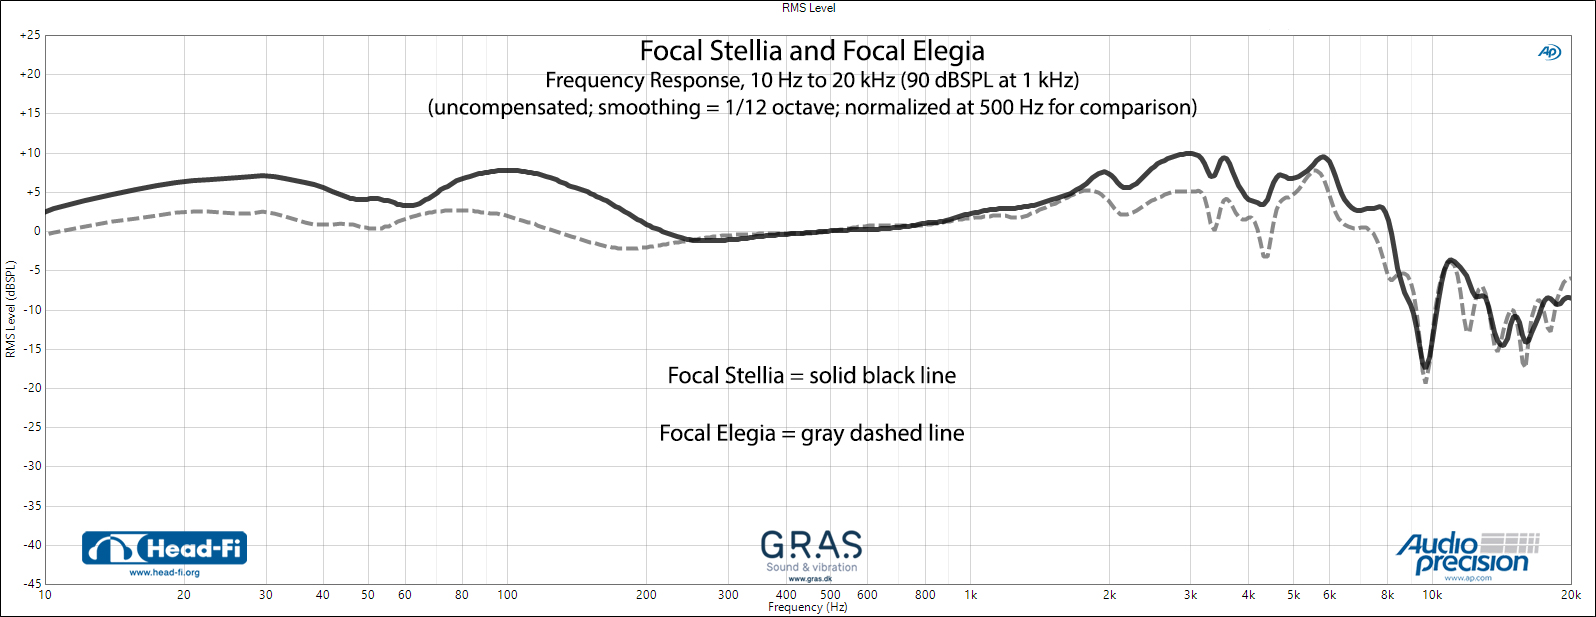 FR---Focal-Stellia-(black-solid)-v-Focal-Elegia-(gray-dashed).jpg